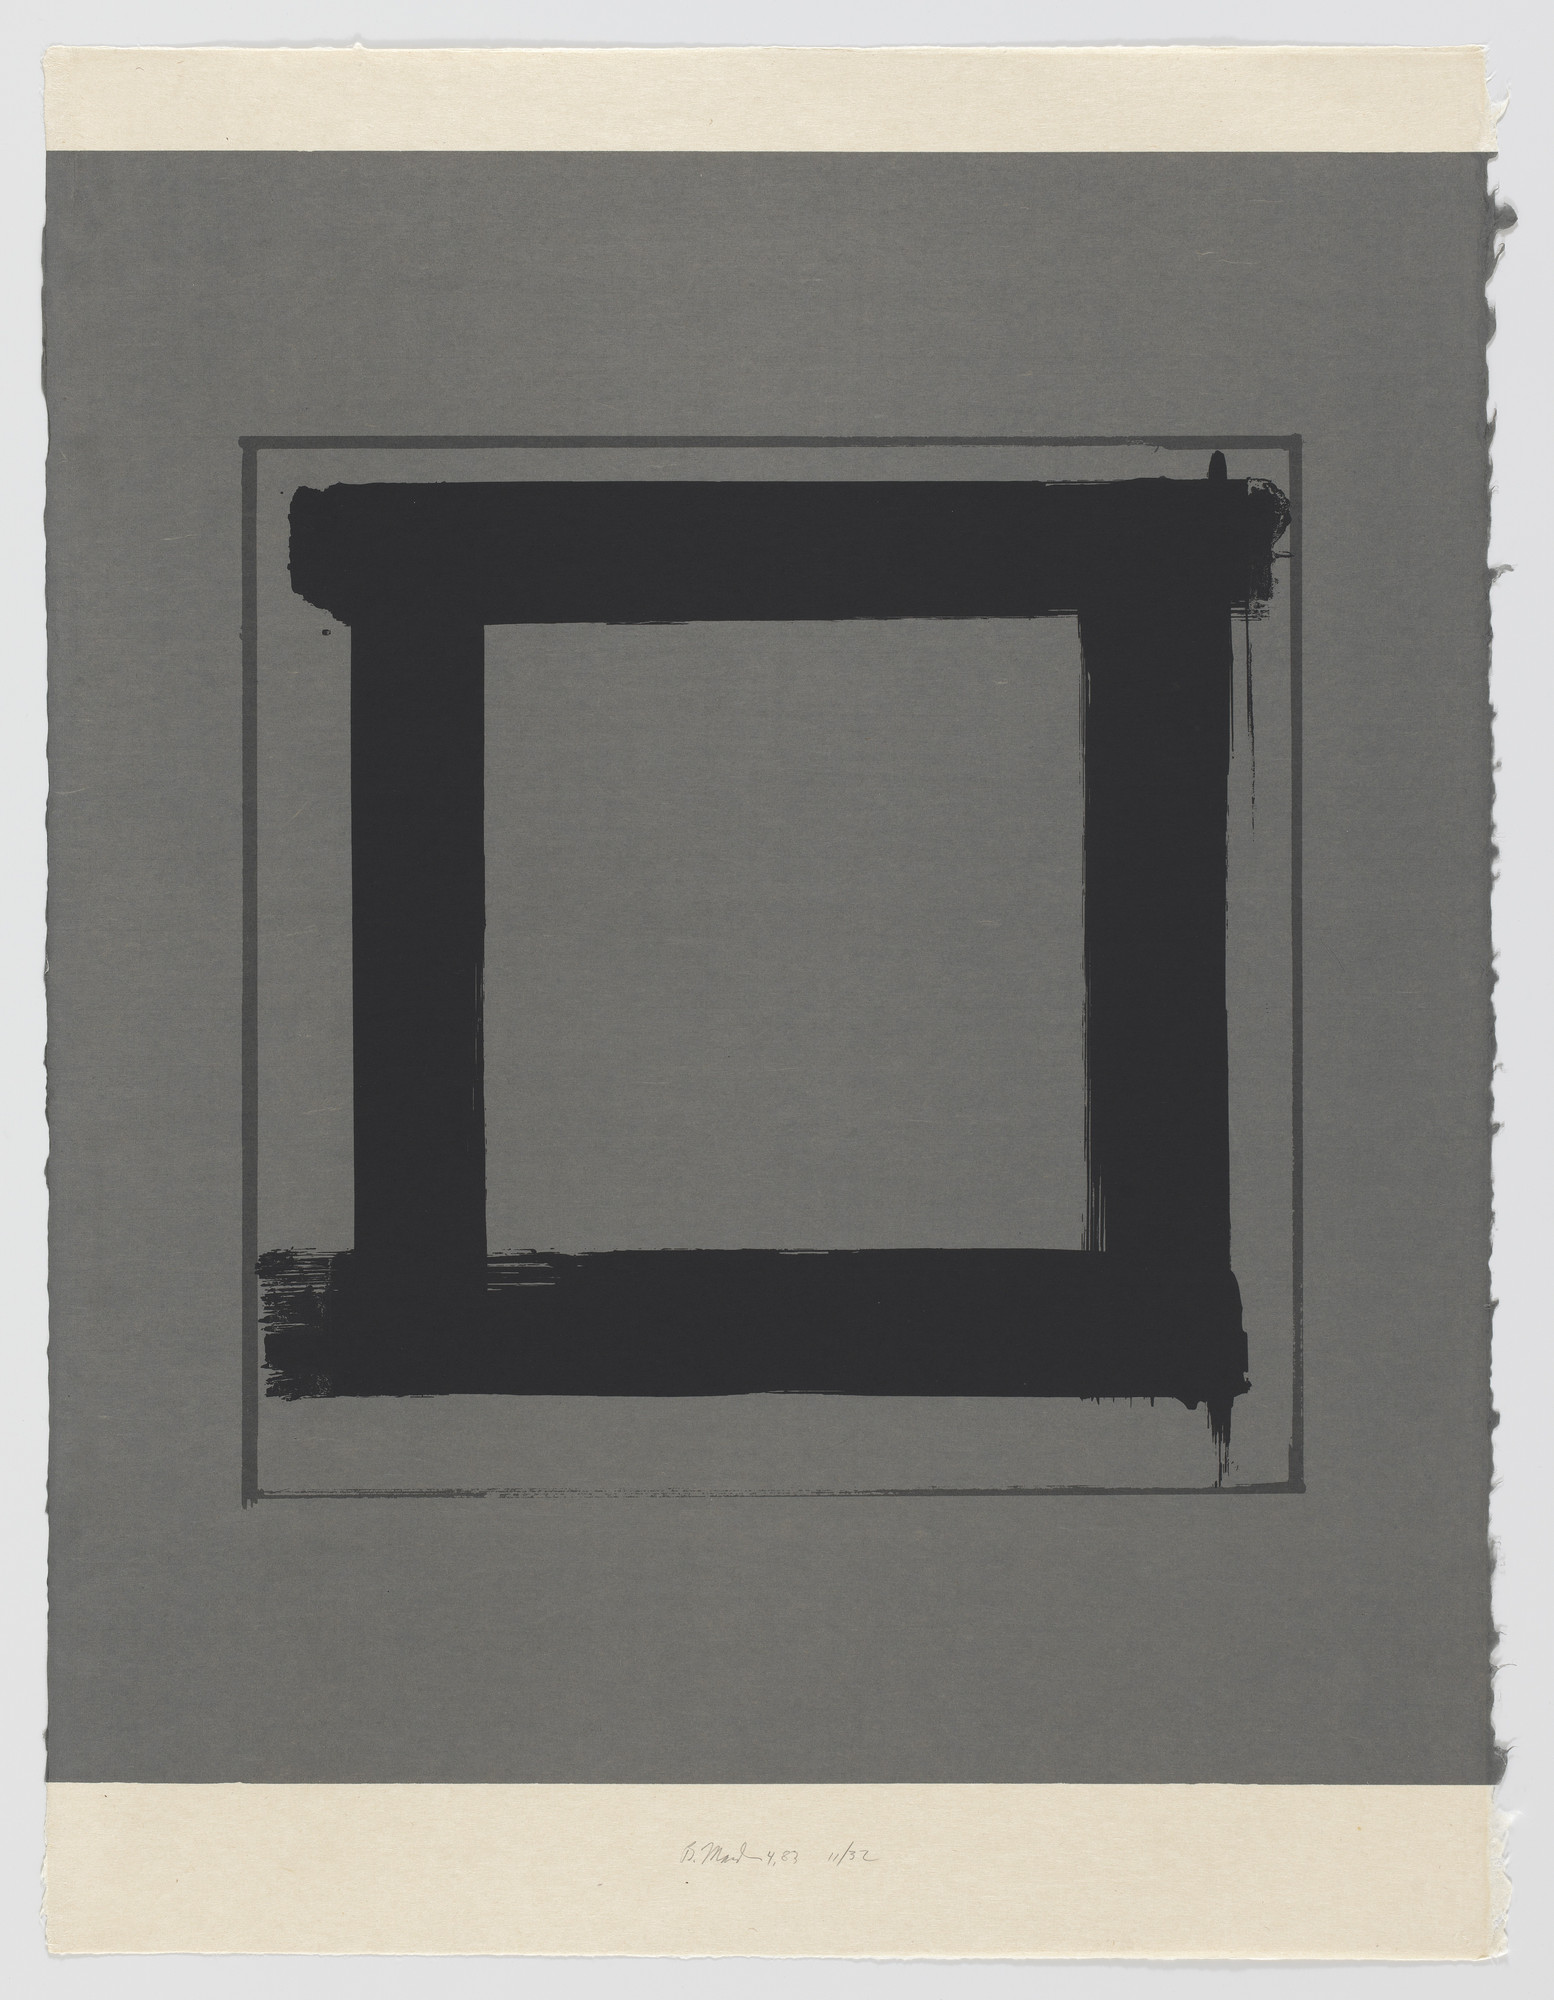 Brice Marden. 4 from the series 1,2,3,4. 1983